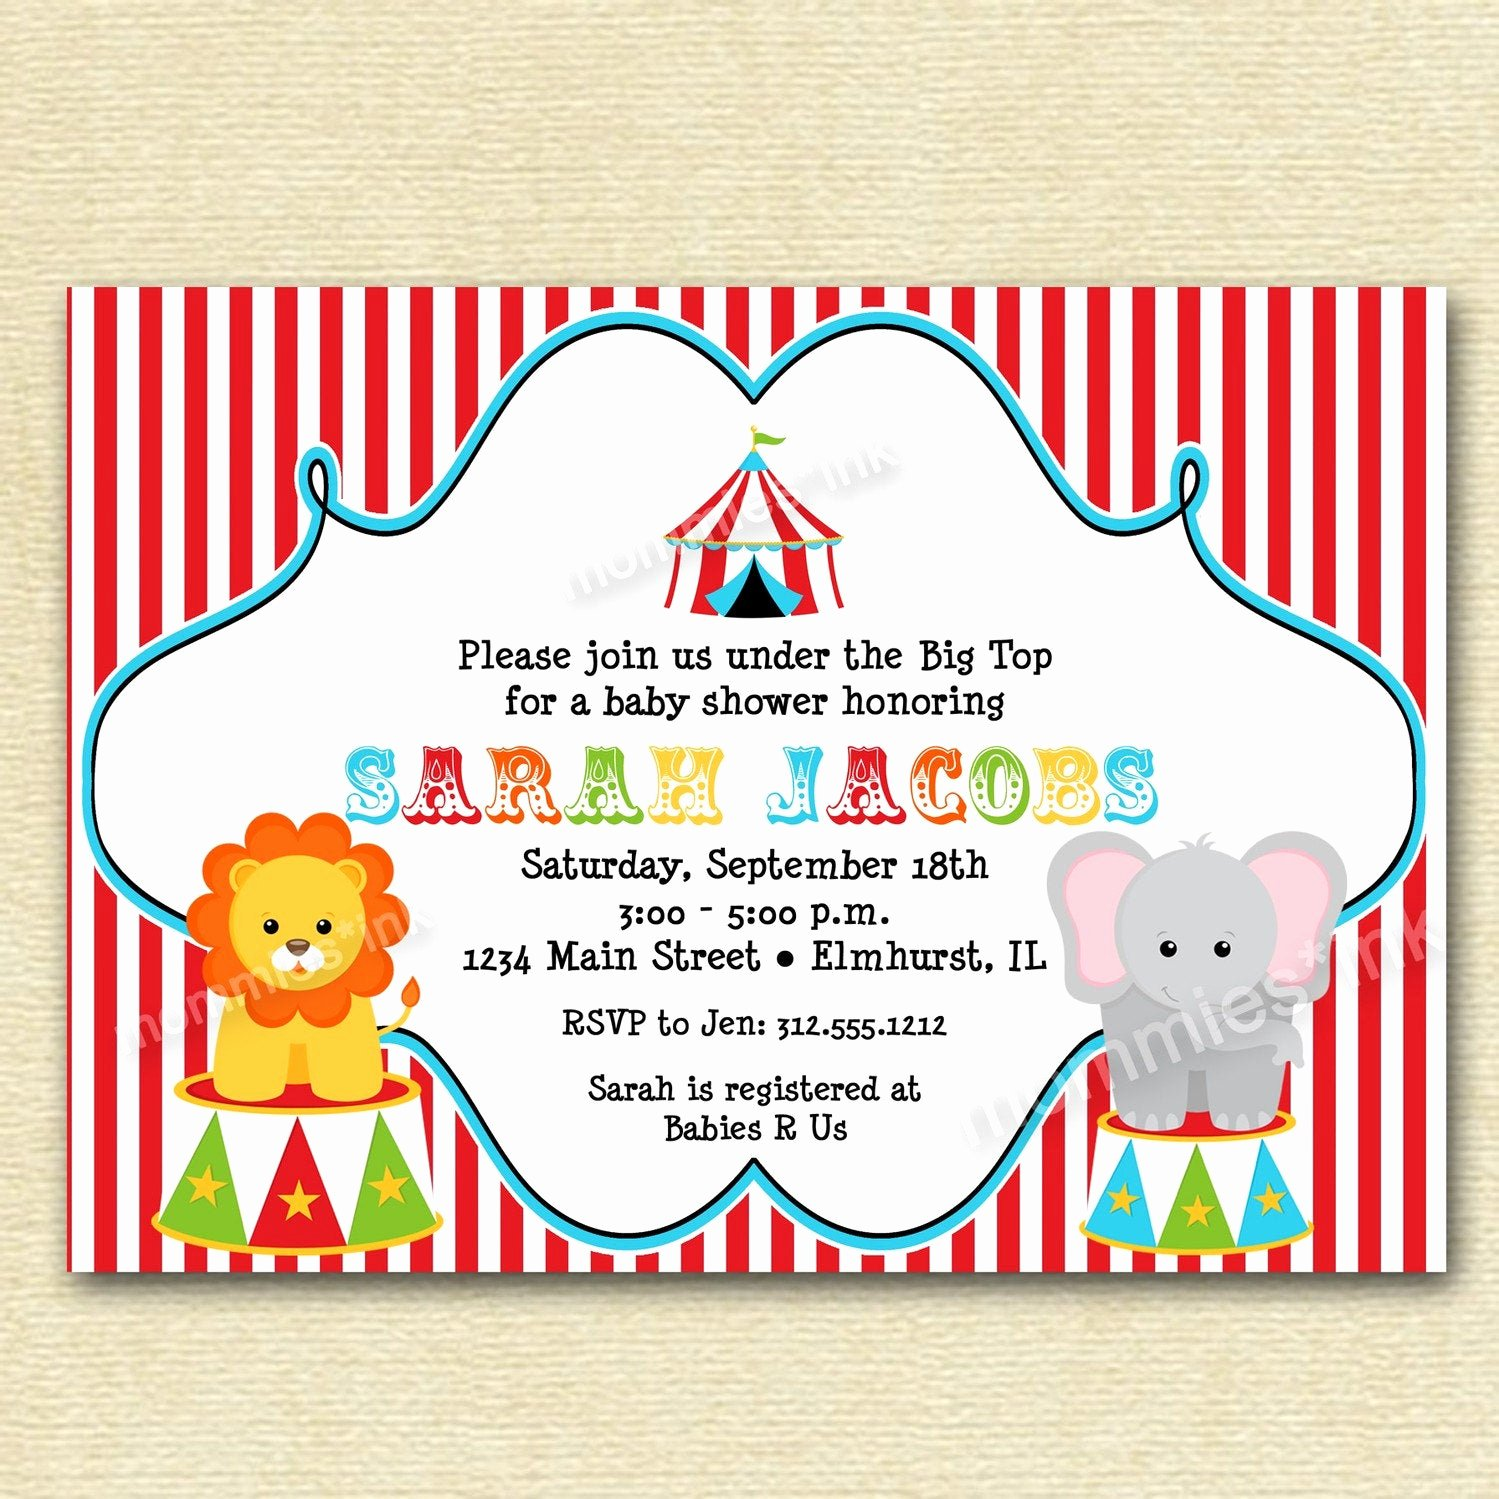 Free Printable Carnival themed Invitations Awesome Circus Big top Baby Shower Invitation Printable by Mommiesink